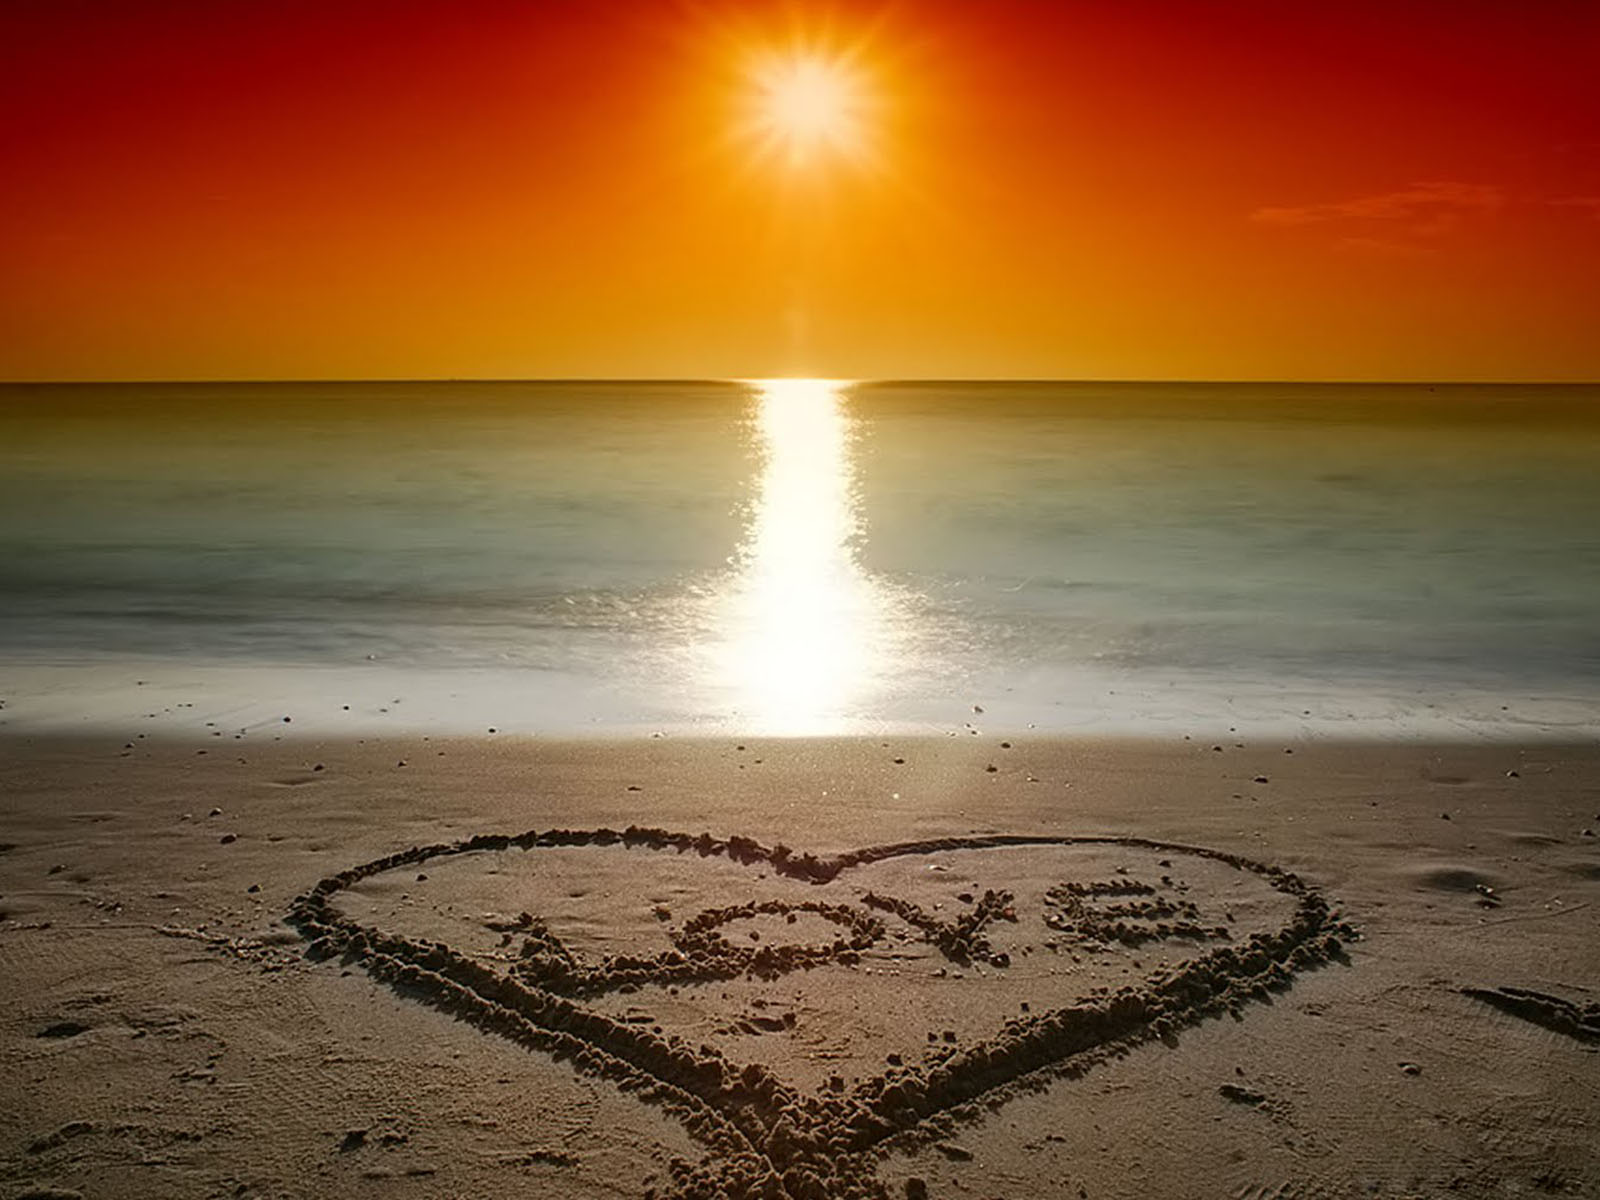 Beach Love Sunset - the sand love sunset at beach - Beach Love Sunset